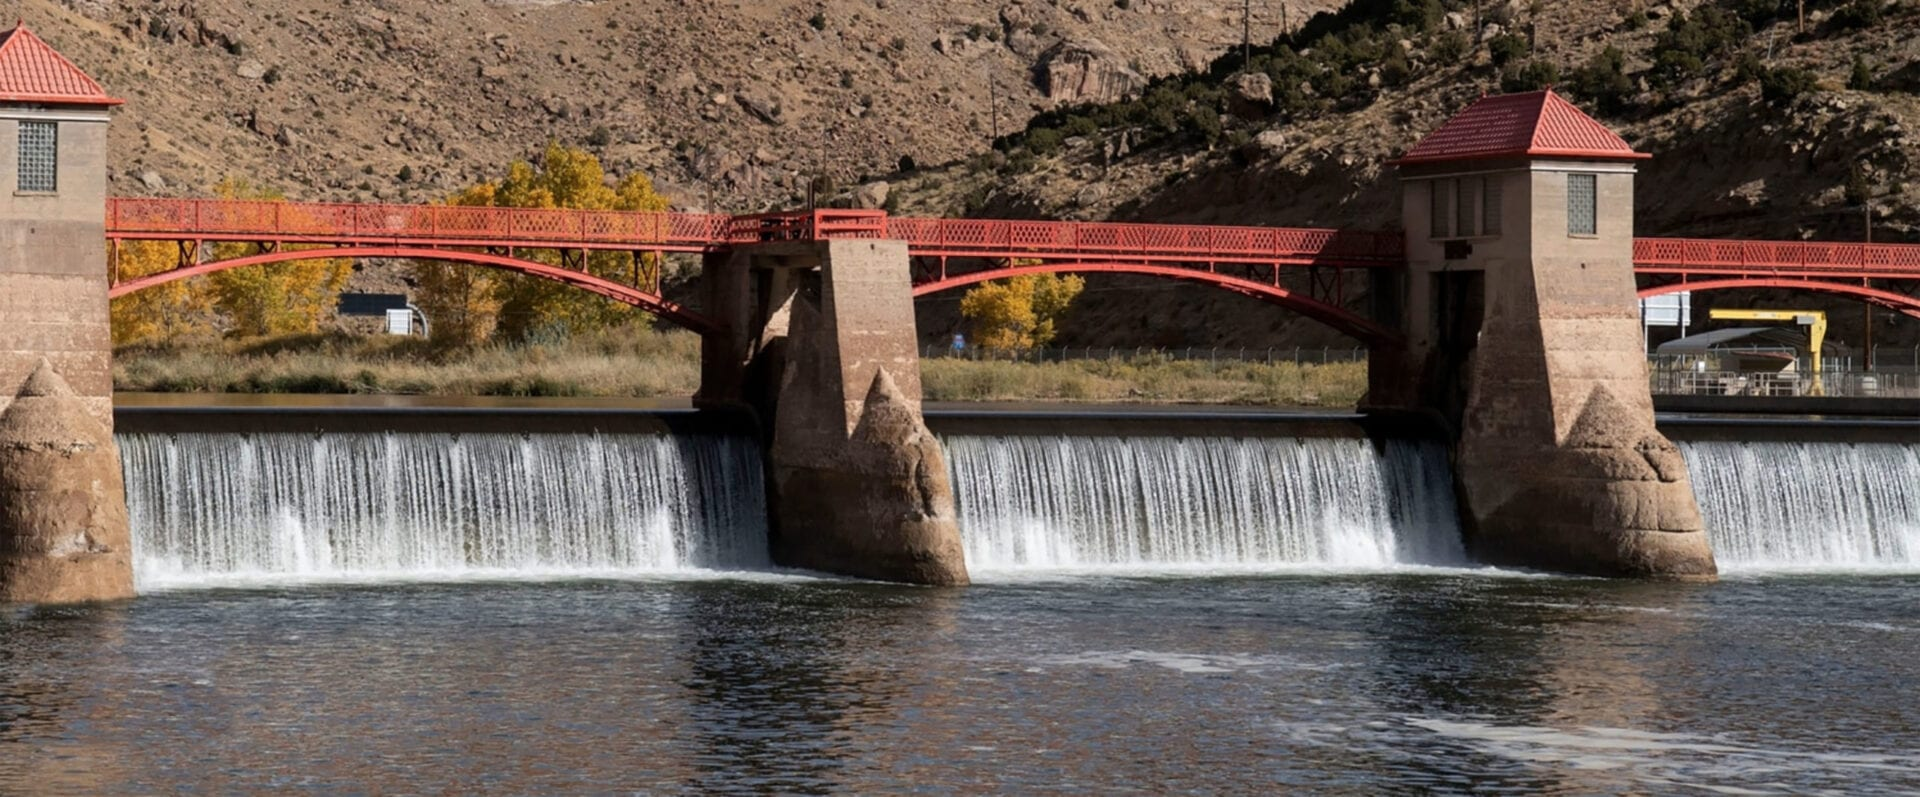 Colorado-Water-Infrastructure-scaled